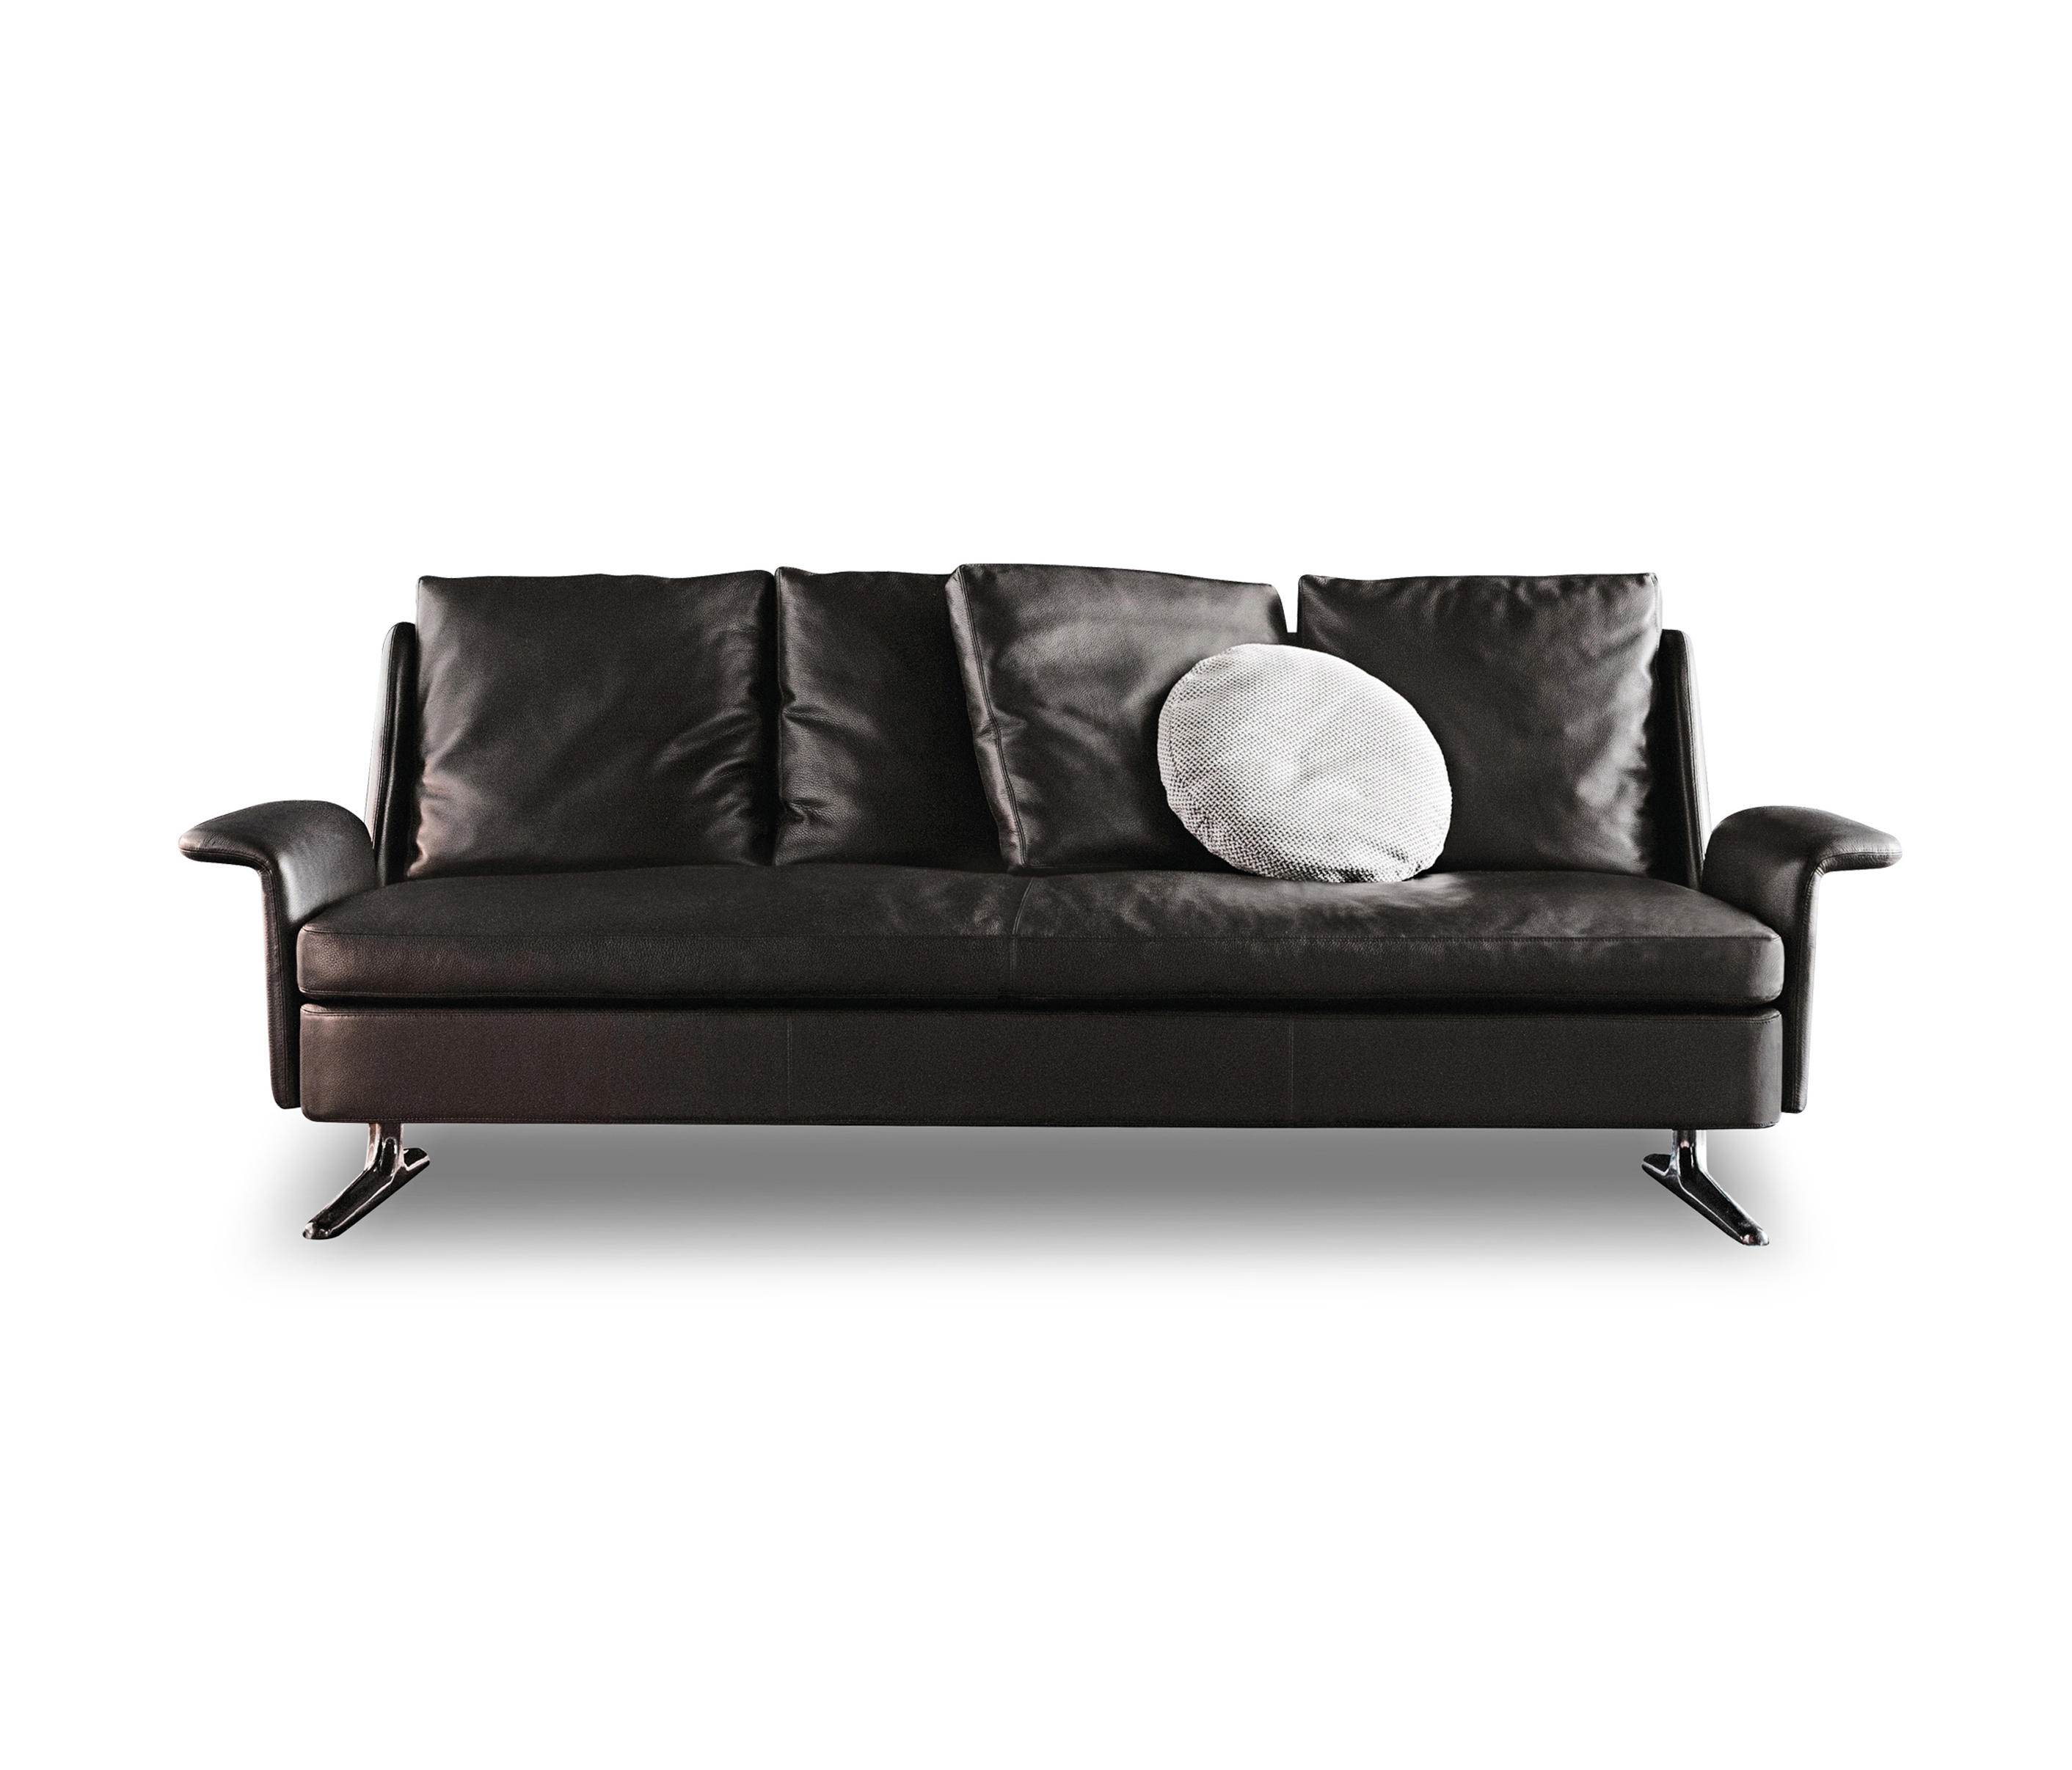 SPENCER Lounge sofas from Minotti